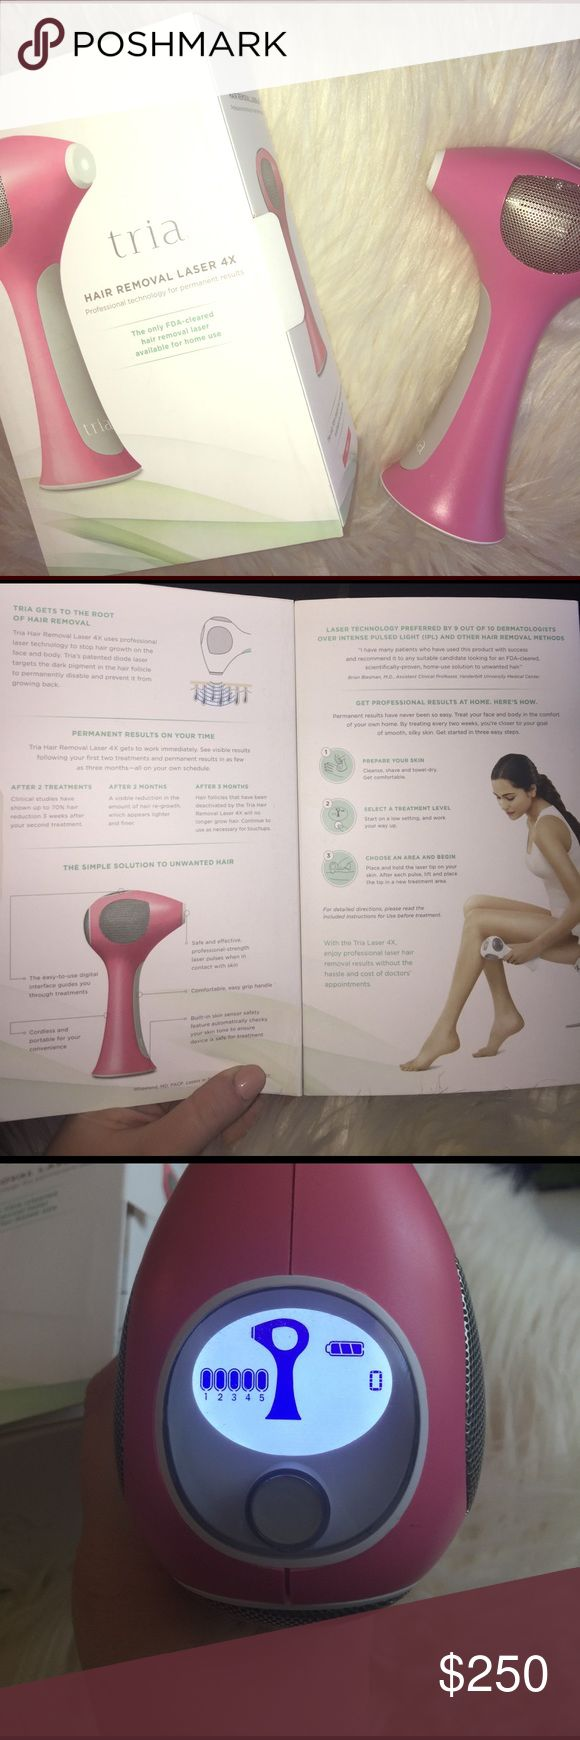 At Home Laser Hair Remover | Tria Beauty This is a laser hair removal system for at home use. It removes unwanted hair. This is a permanent hair removal product. Personally I only used this for my face but the box says you can use it on (legs, arms, bikini line, underarms, feet; hands, chest, back, stomach, cheek line and downward for your face). I have had actual laser treatment from a dermatologist office before doing this and it has the same effect and feeling. Intensity setting 1-5…